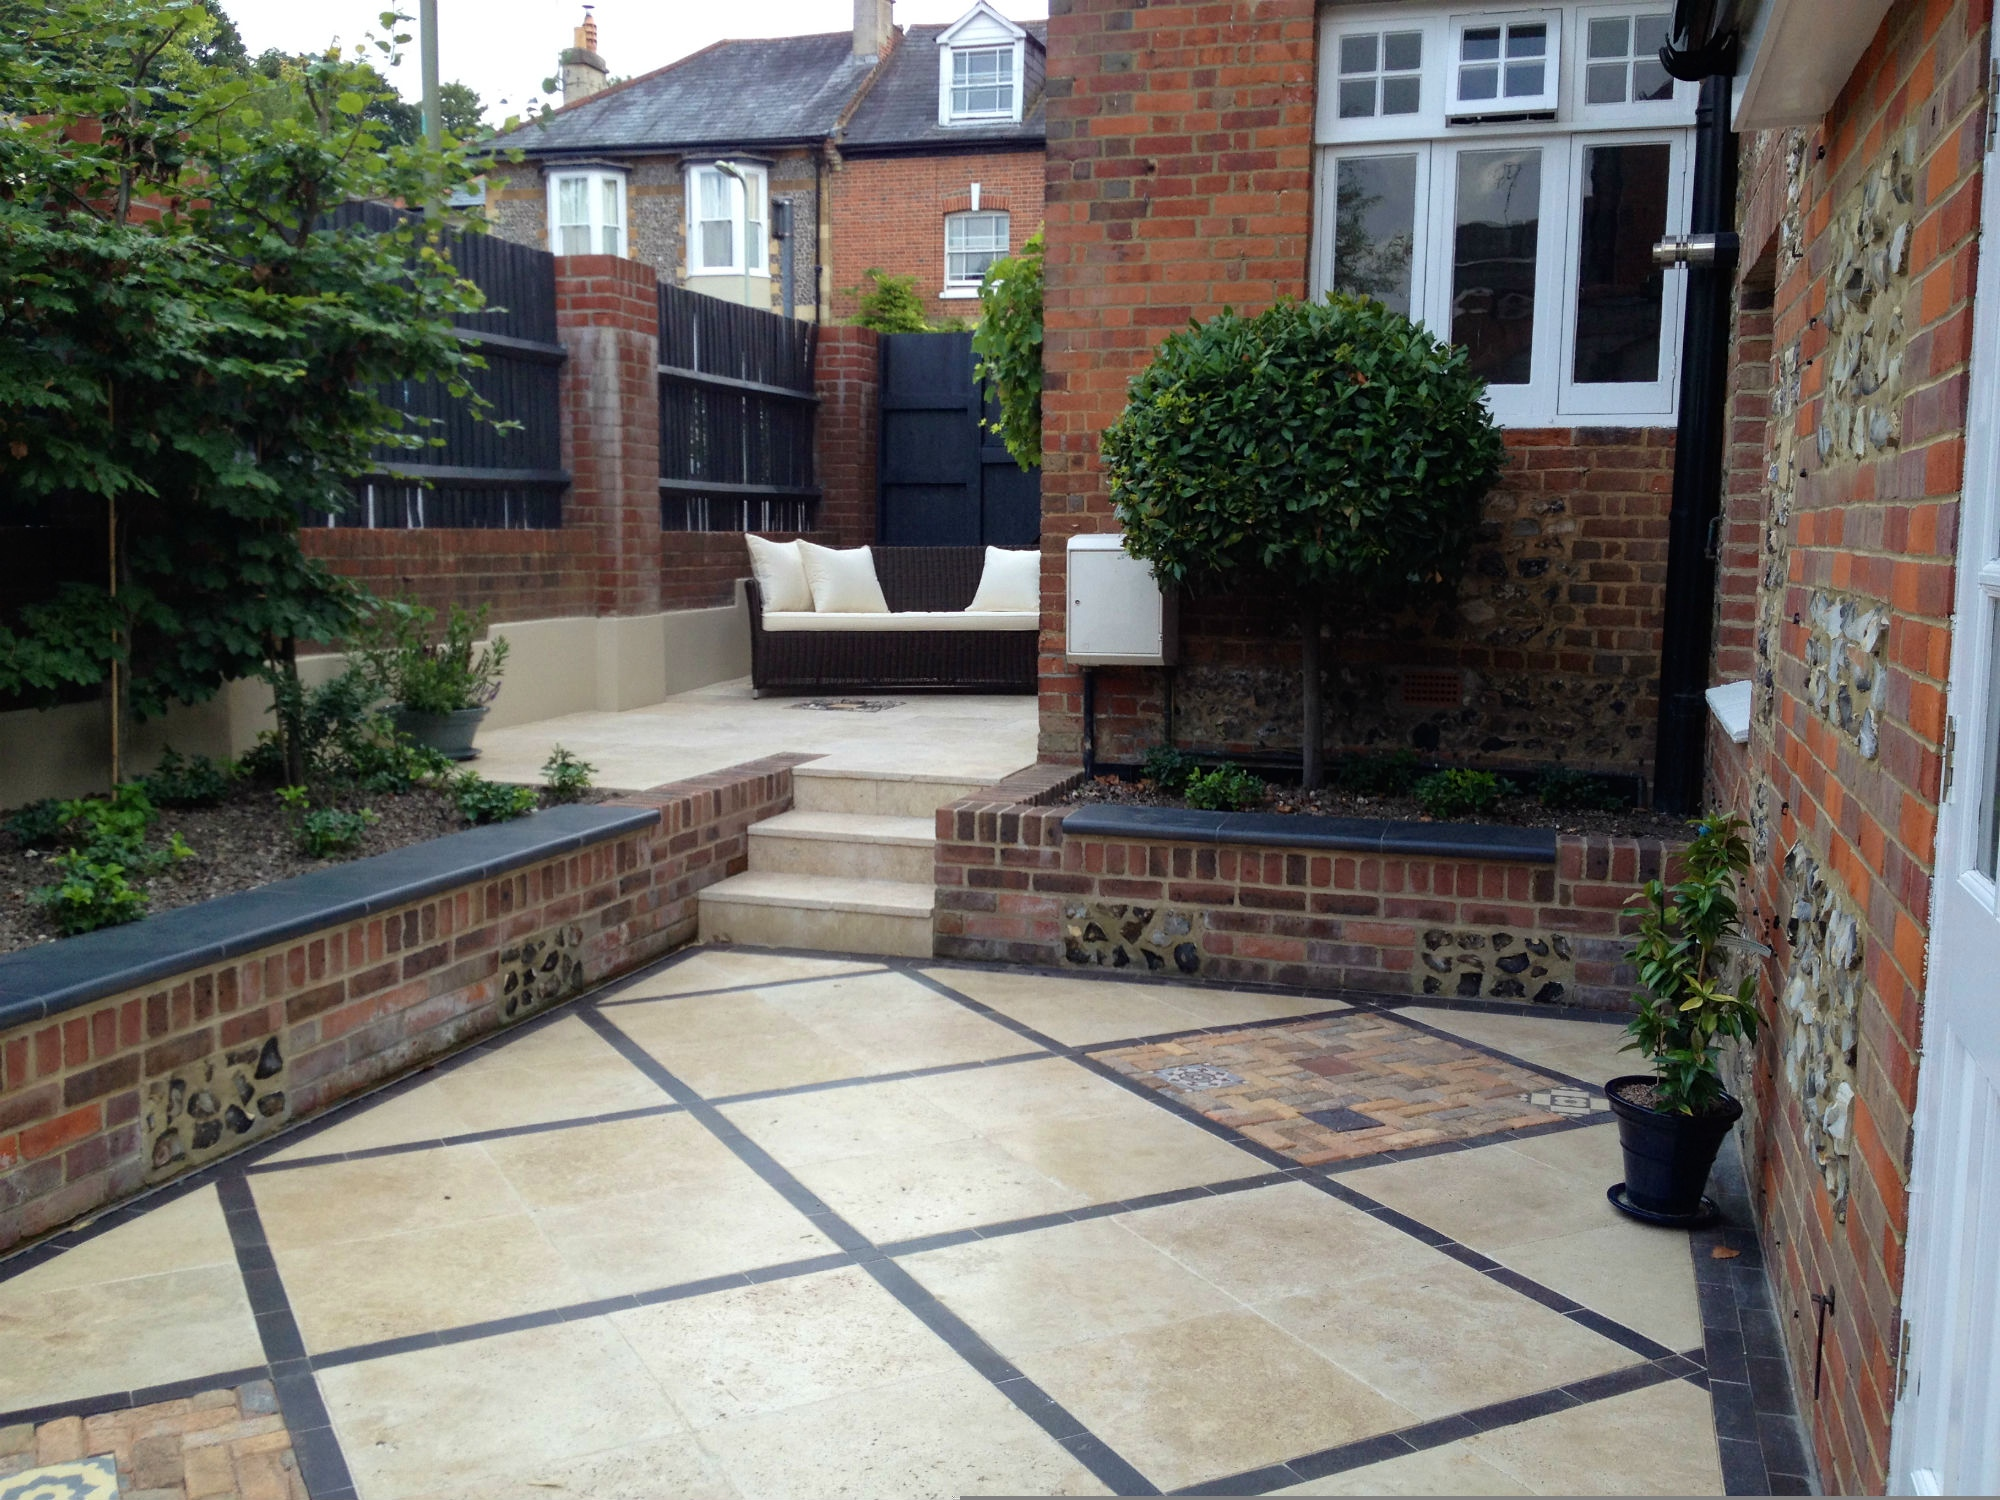 Courtyard garden winchester hampshire amy perkins for Better homes and gardens courtyard ideas